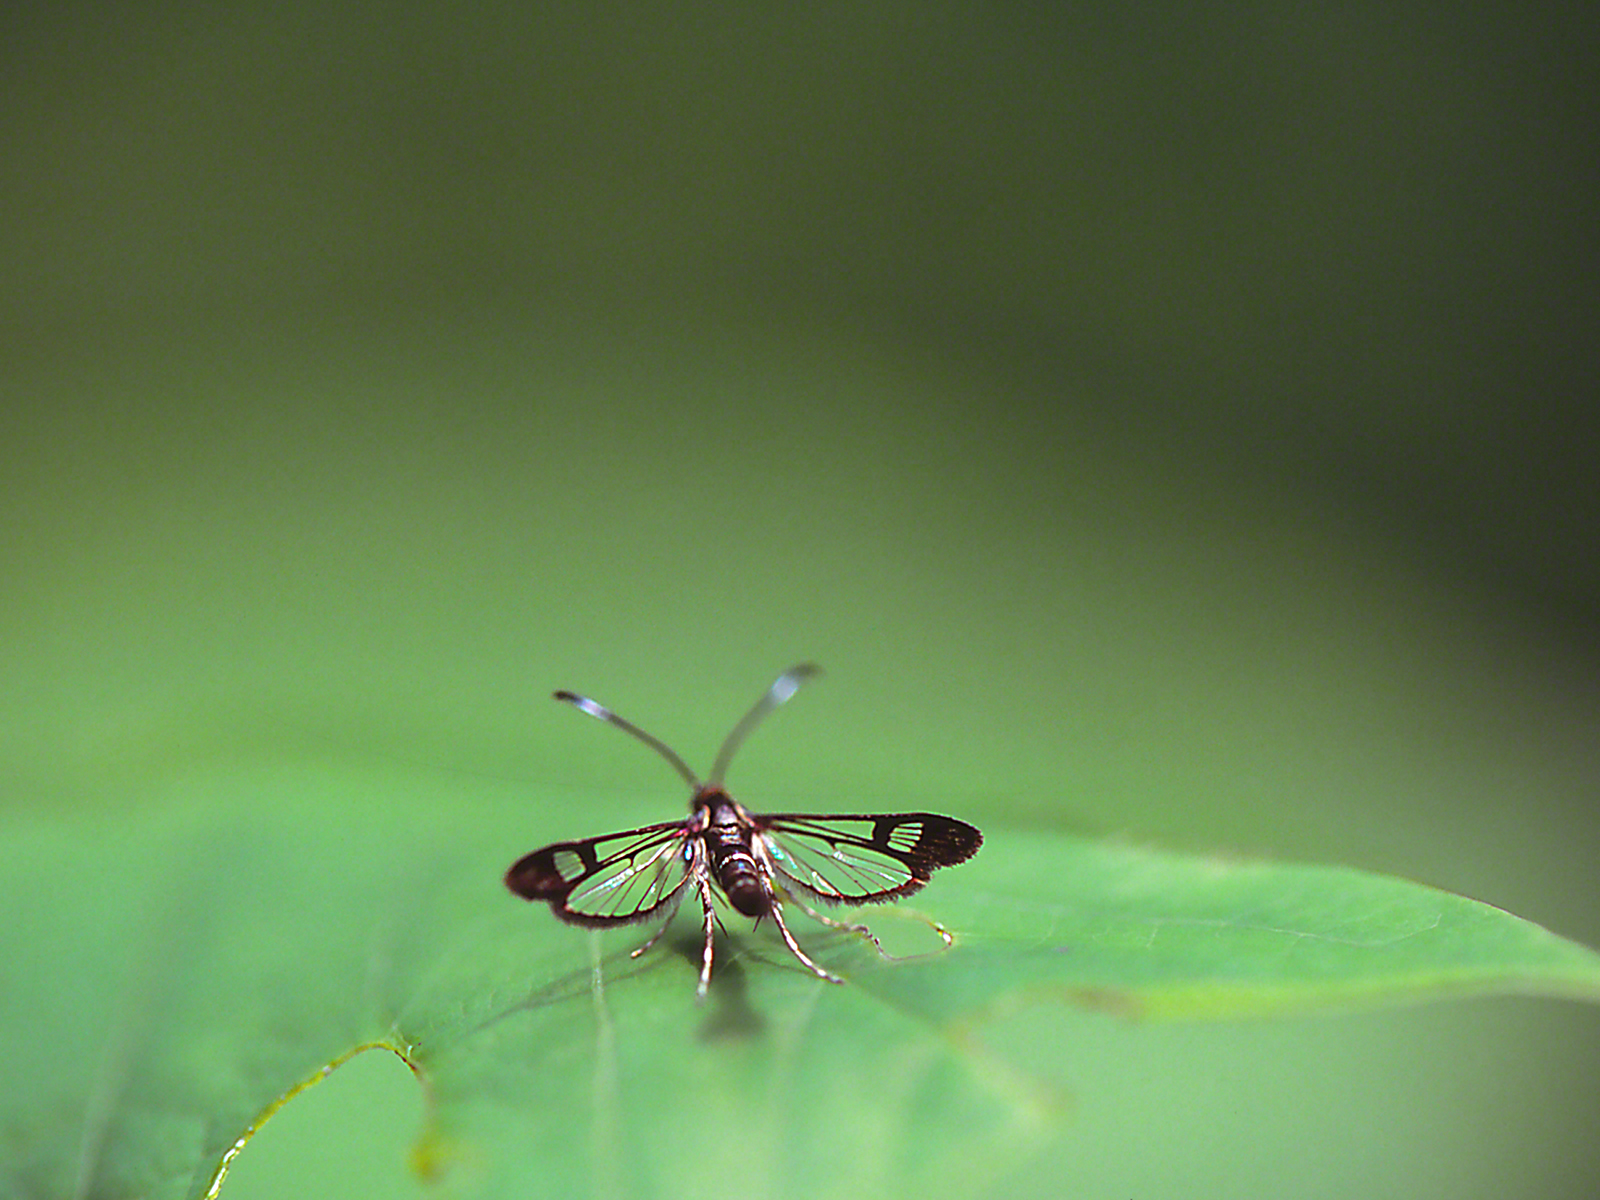 Unidentified Fly photographed by Jeff Zablow at Harris Neck National Wildlife Refuge, GA